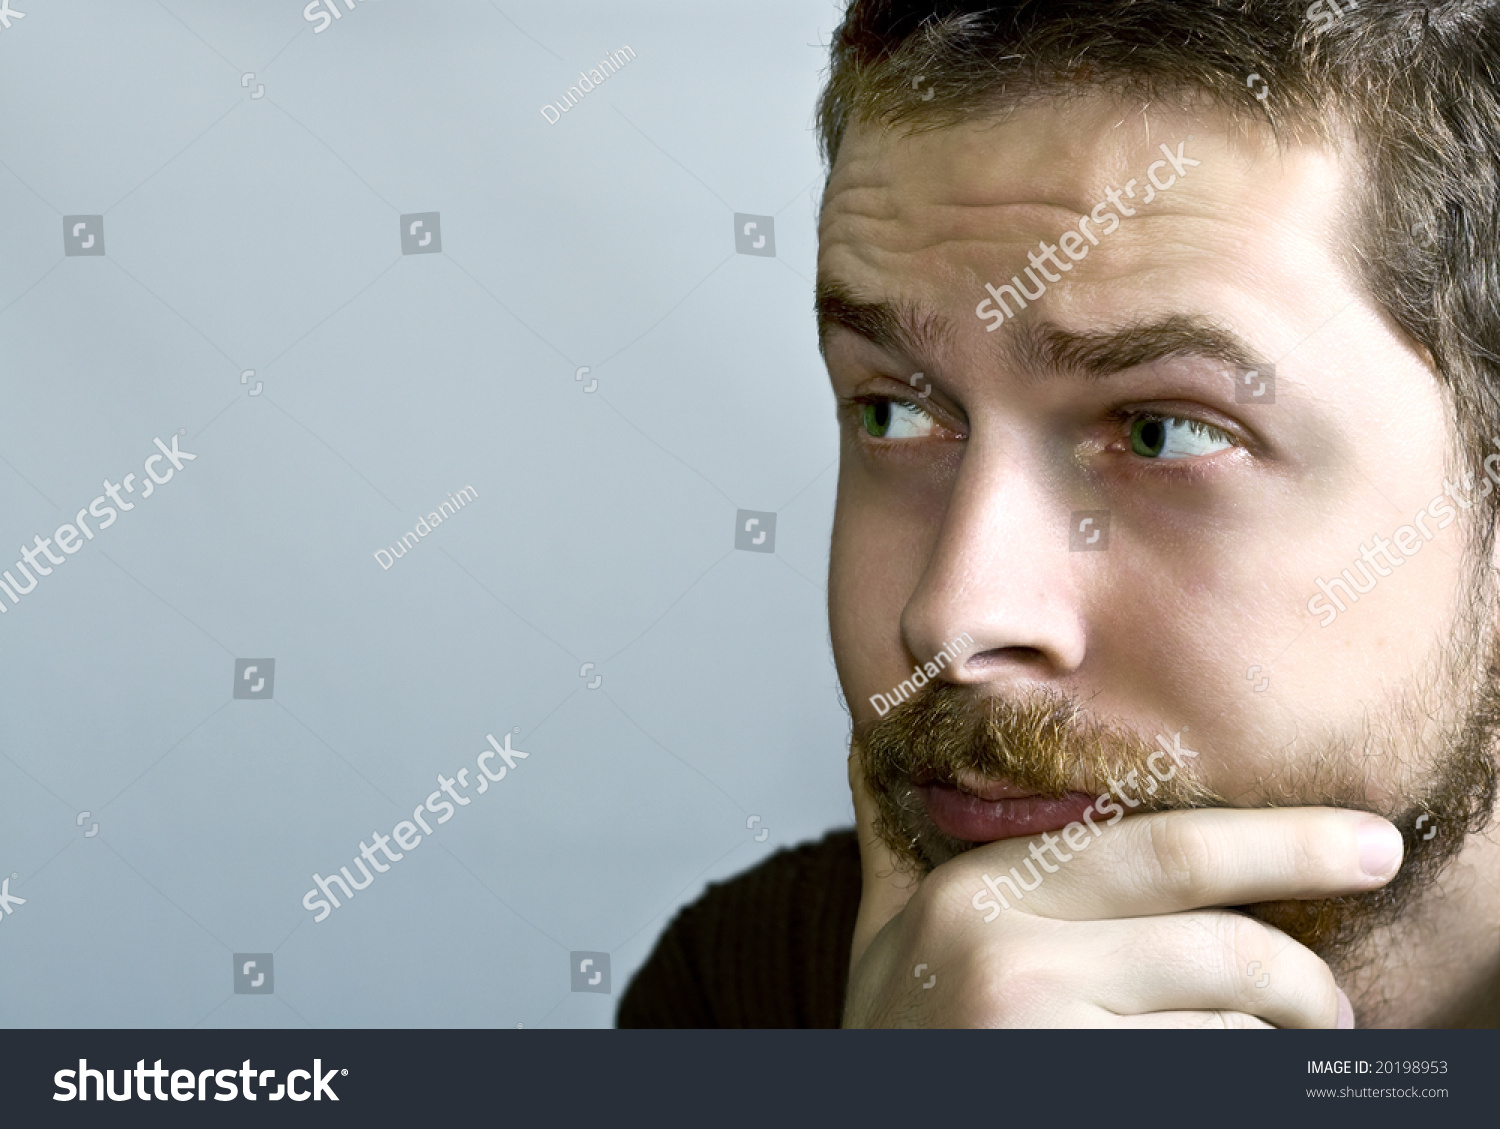 Images of Guy Face Pensive - #SC